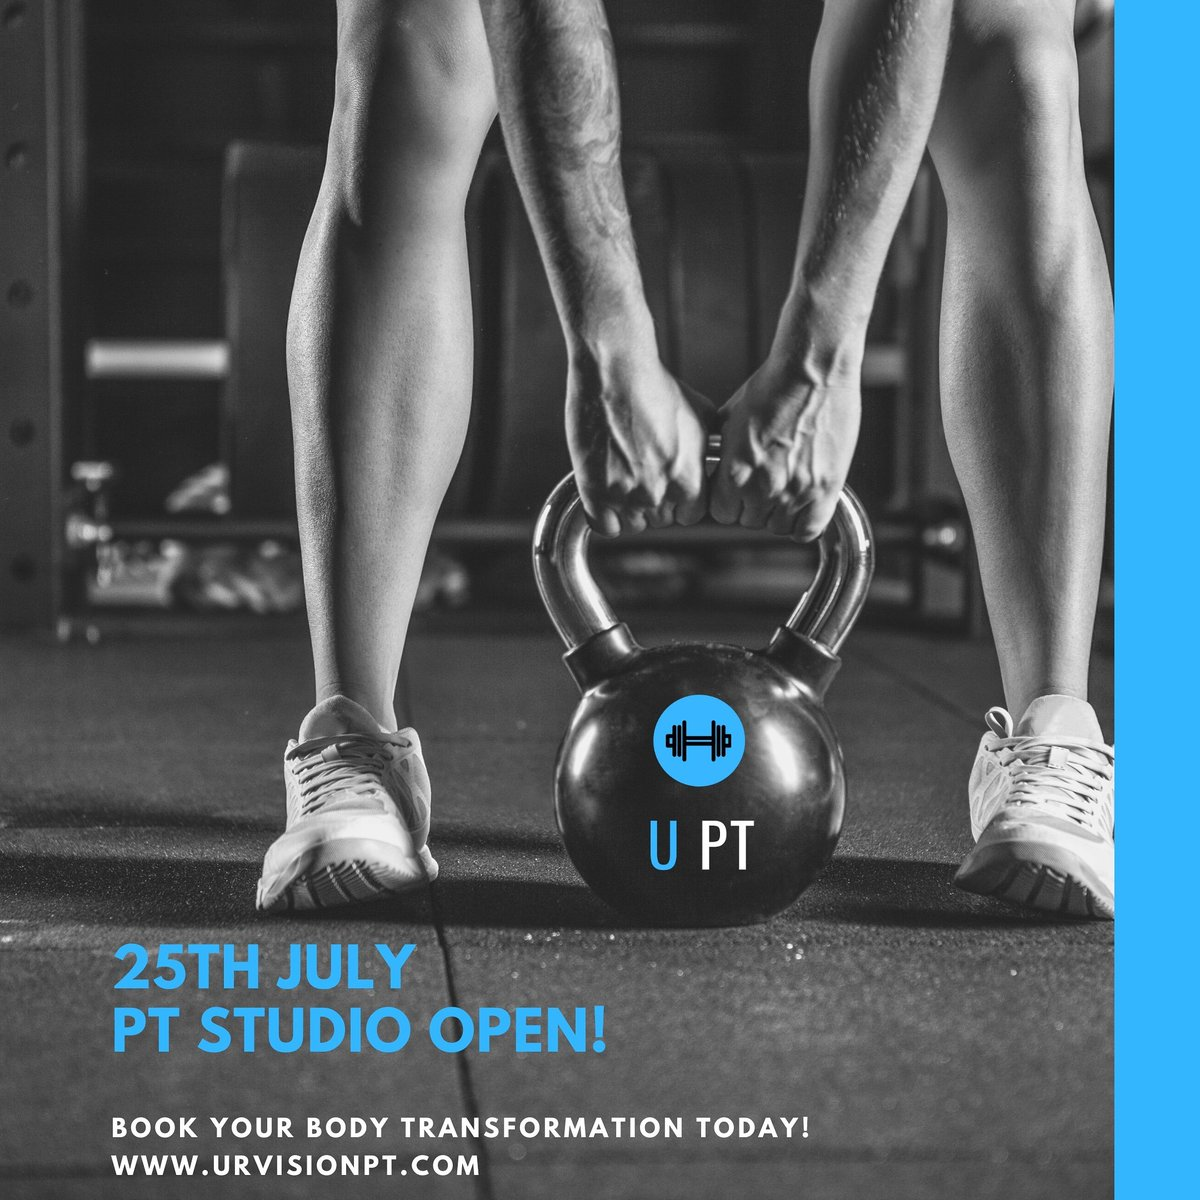 The news we have all been waiting for, 25th July the Personal Training Studio will be back open!! #pt #gym #fitness #studio #gym #kettlebell #results #bodytransformationspecialists #blackrodpt #boltonpt #letsgo #functionalfitness #instafit #instagram #photooftheday #gymopenpic.twitter.com/l97Y5LUc7O